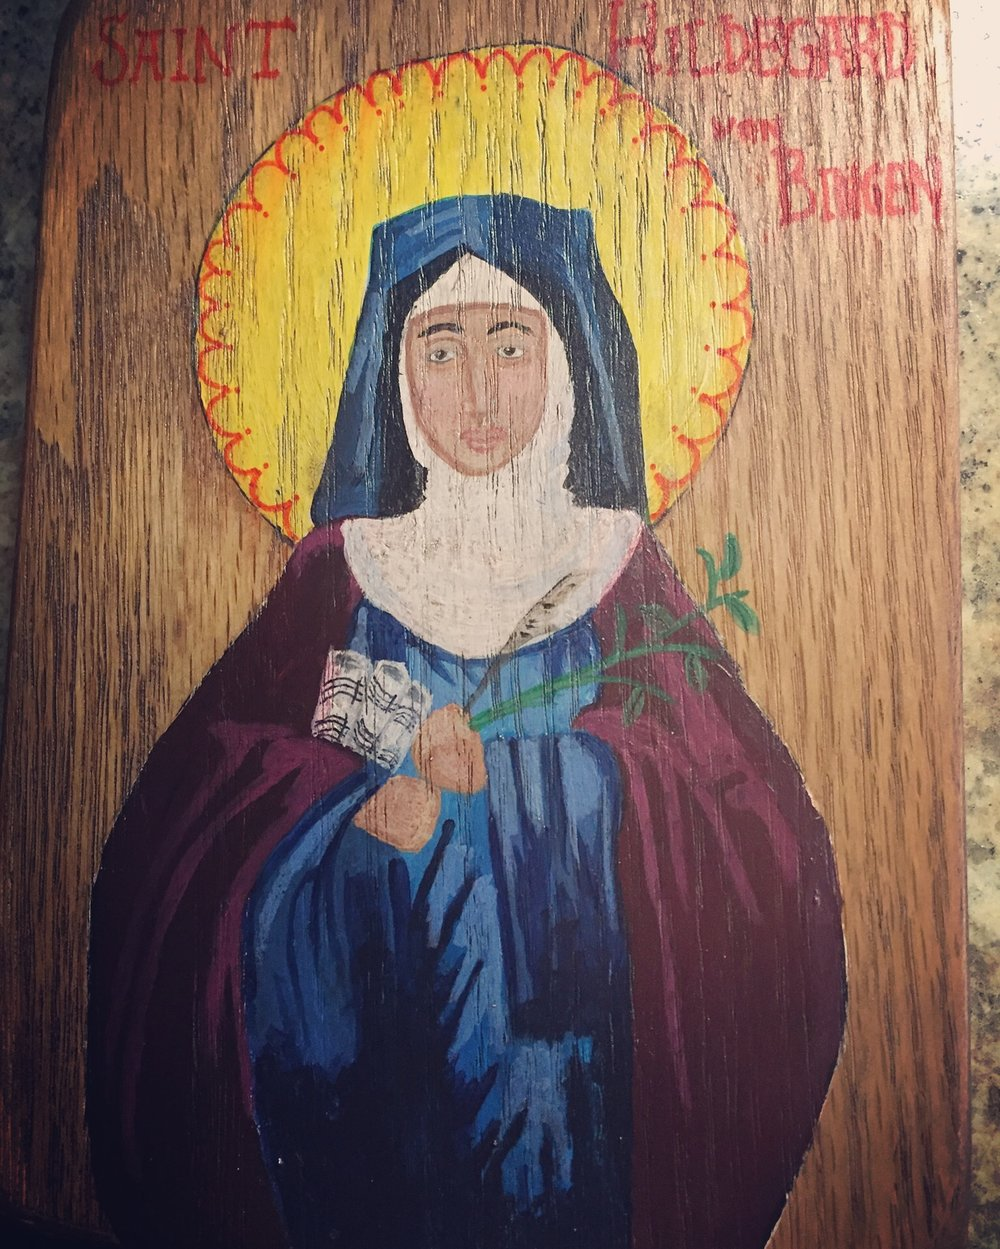 Painting of Hildegard von Bingen by Matt Adams*